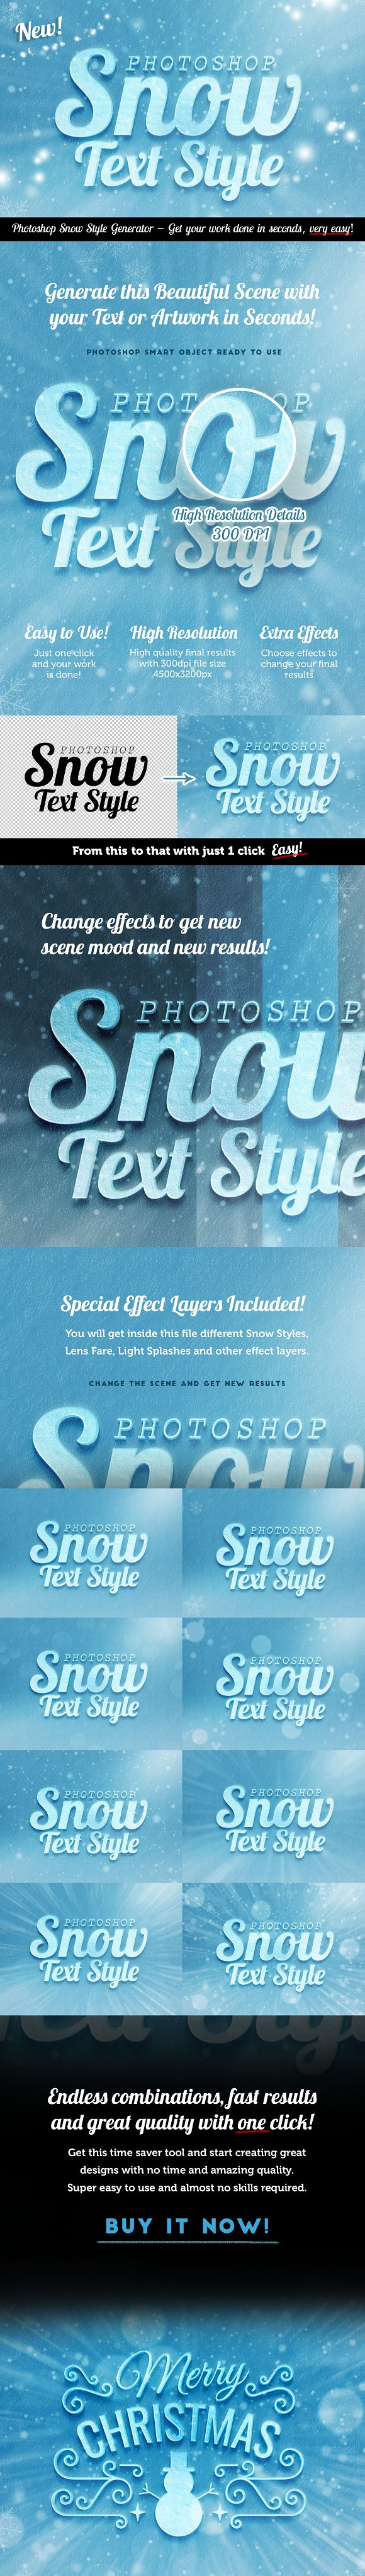 Snow Text Effect Psd for Photoshop